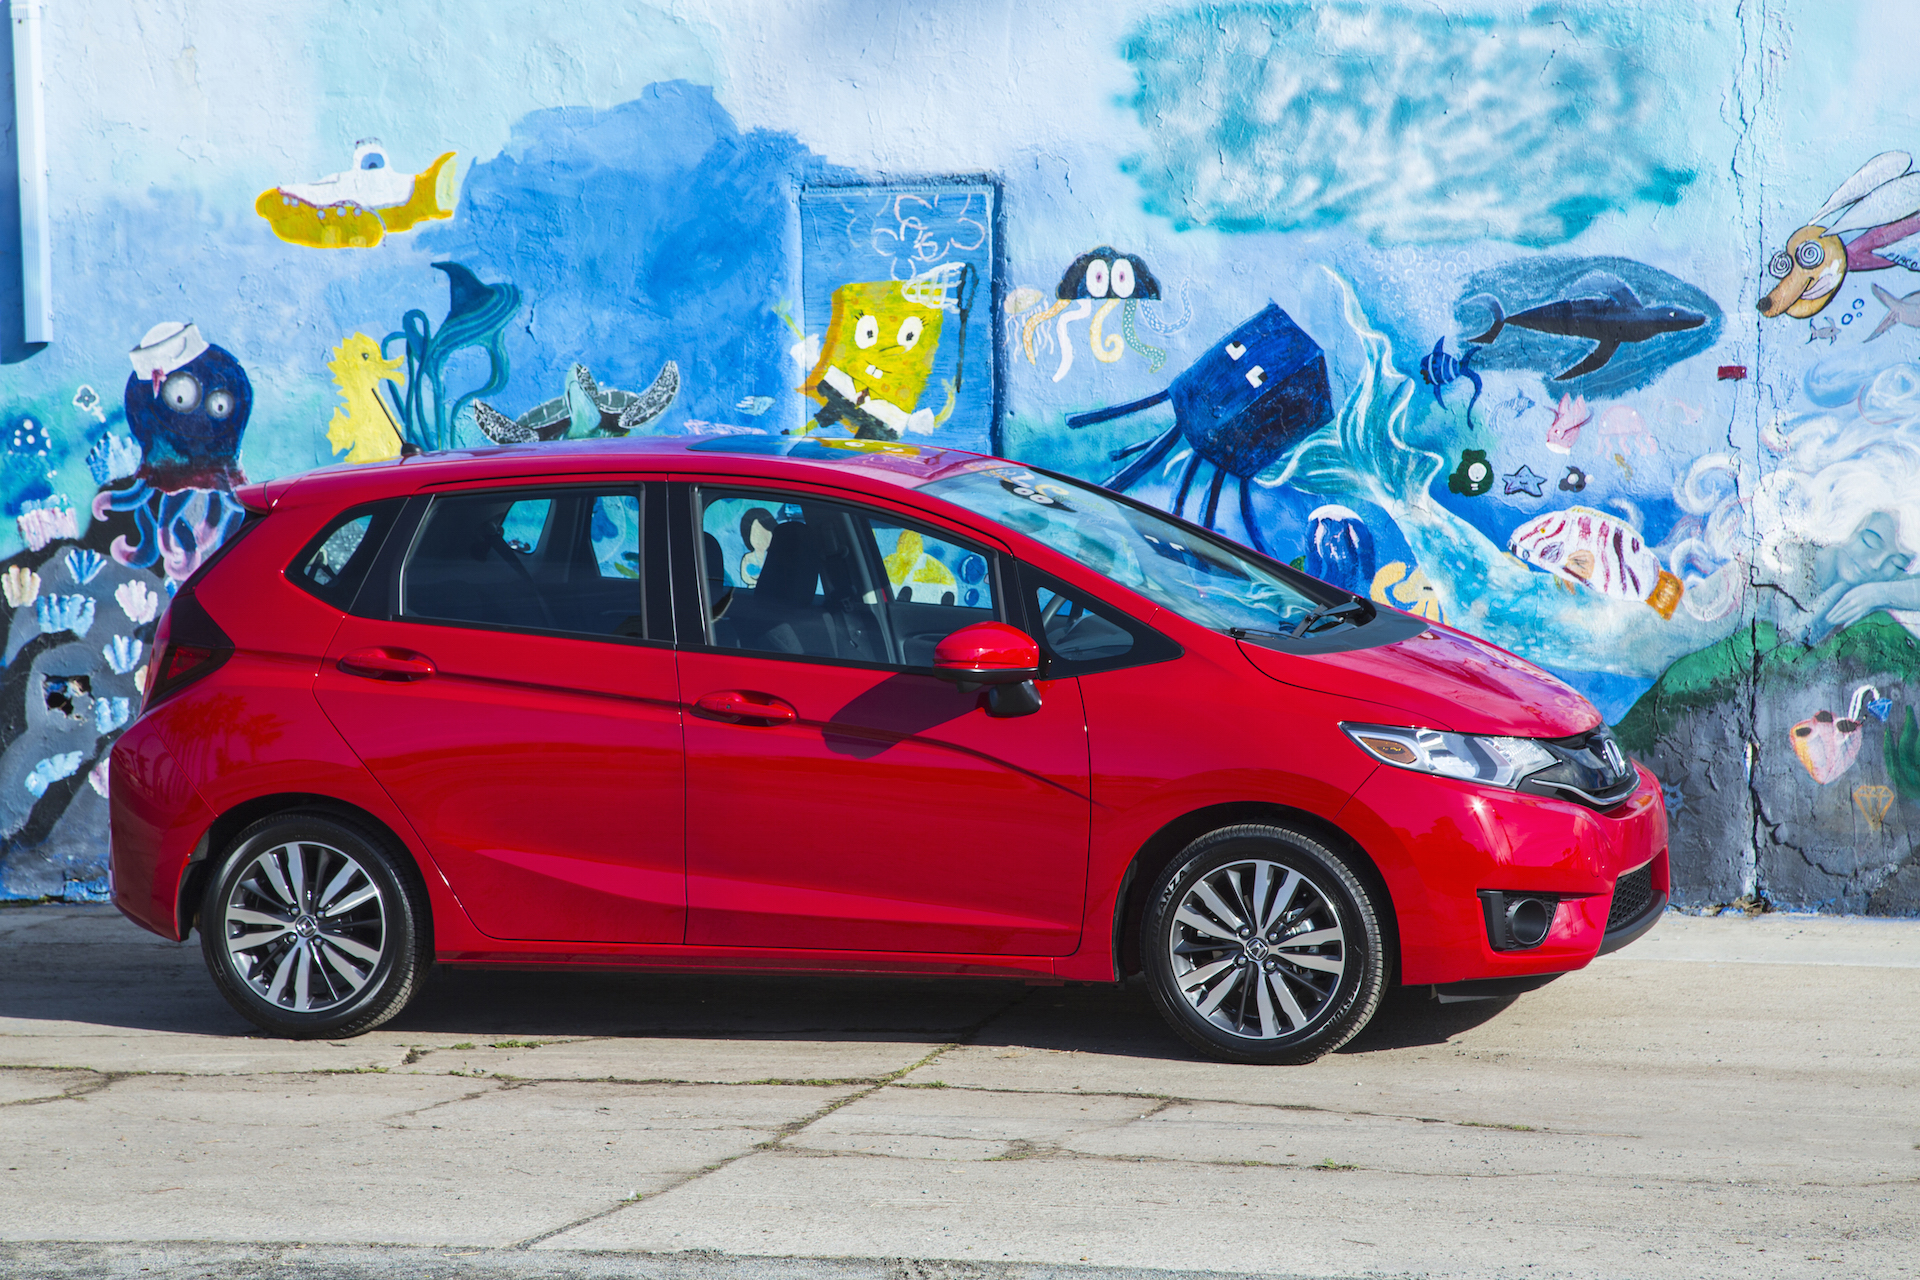 Honda Fit Vs Hyundai Accent Compare Cars